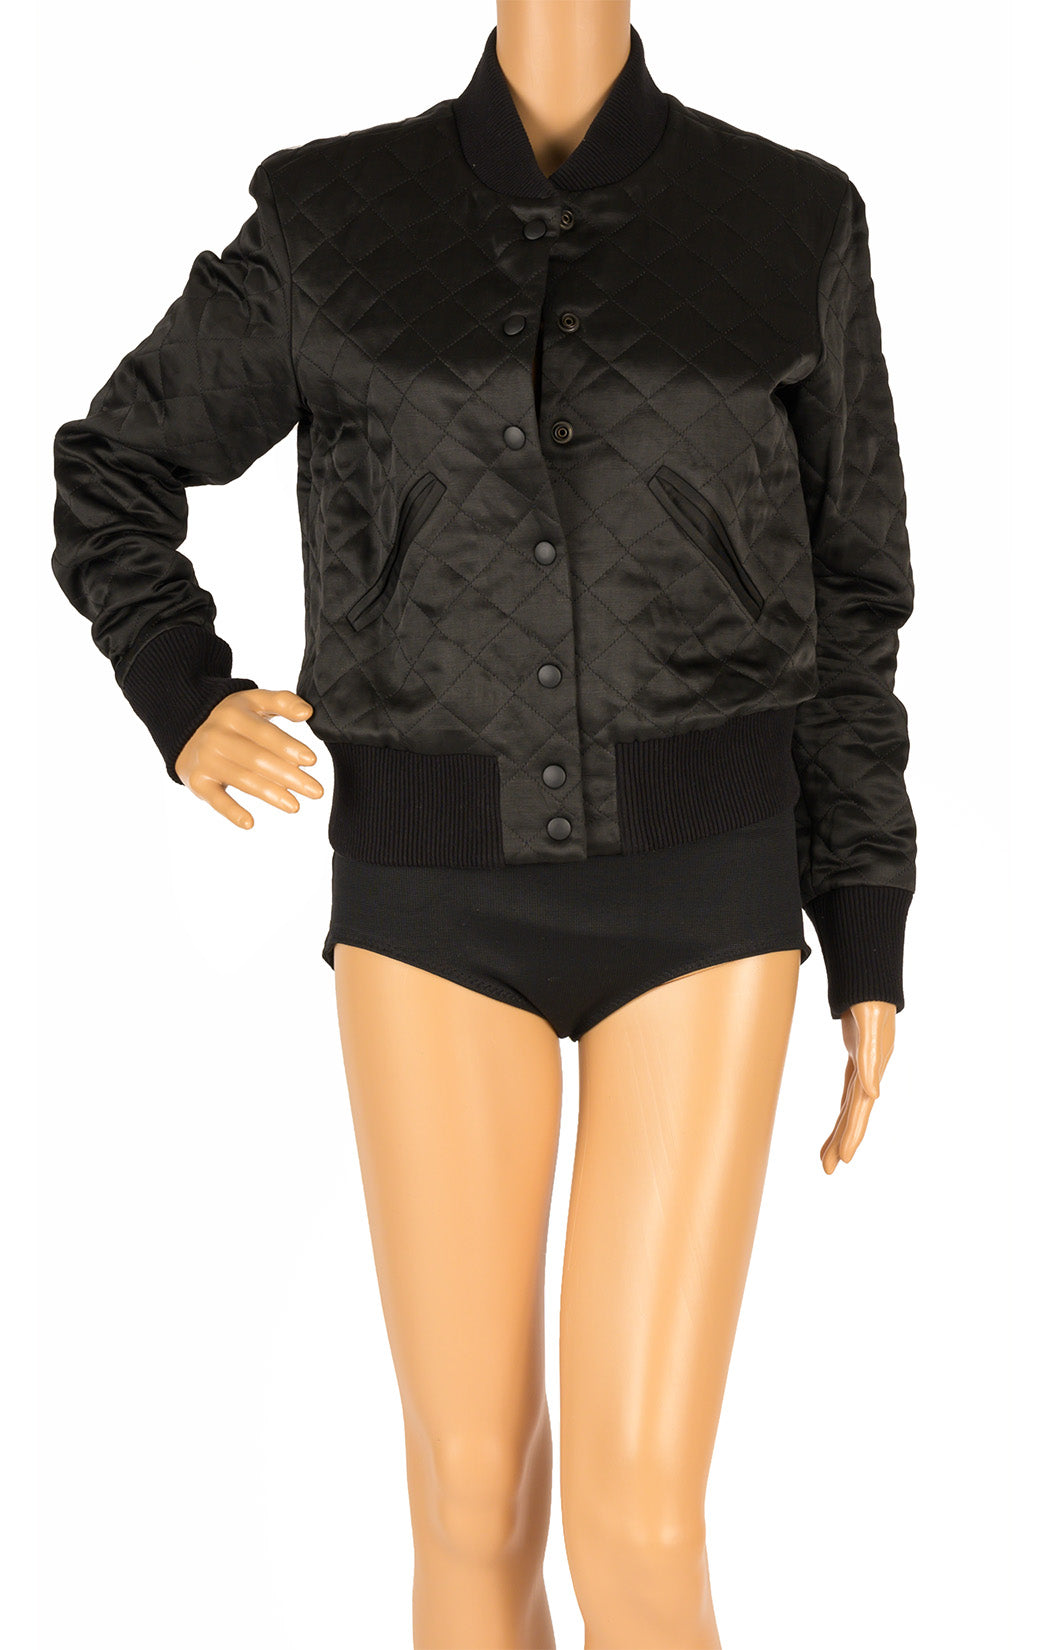 Front view of SMYTHE Bomber jacket Size: 4